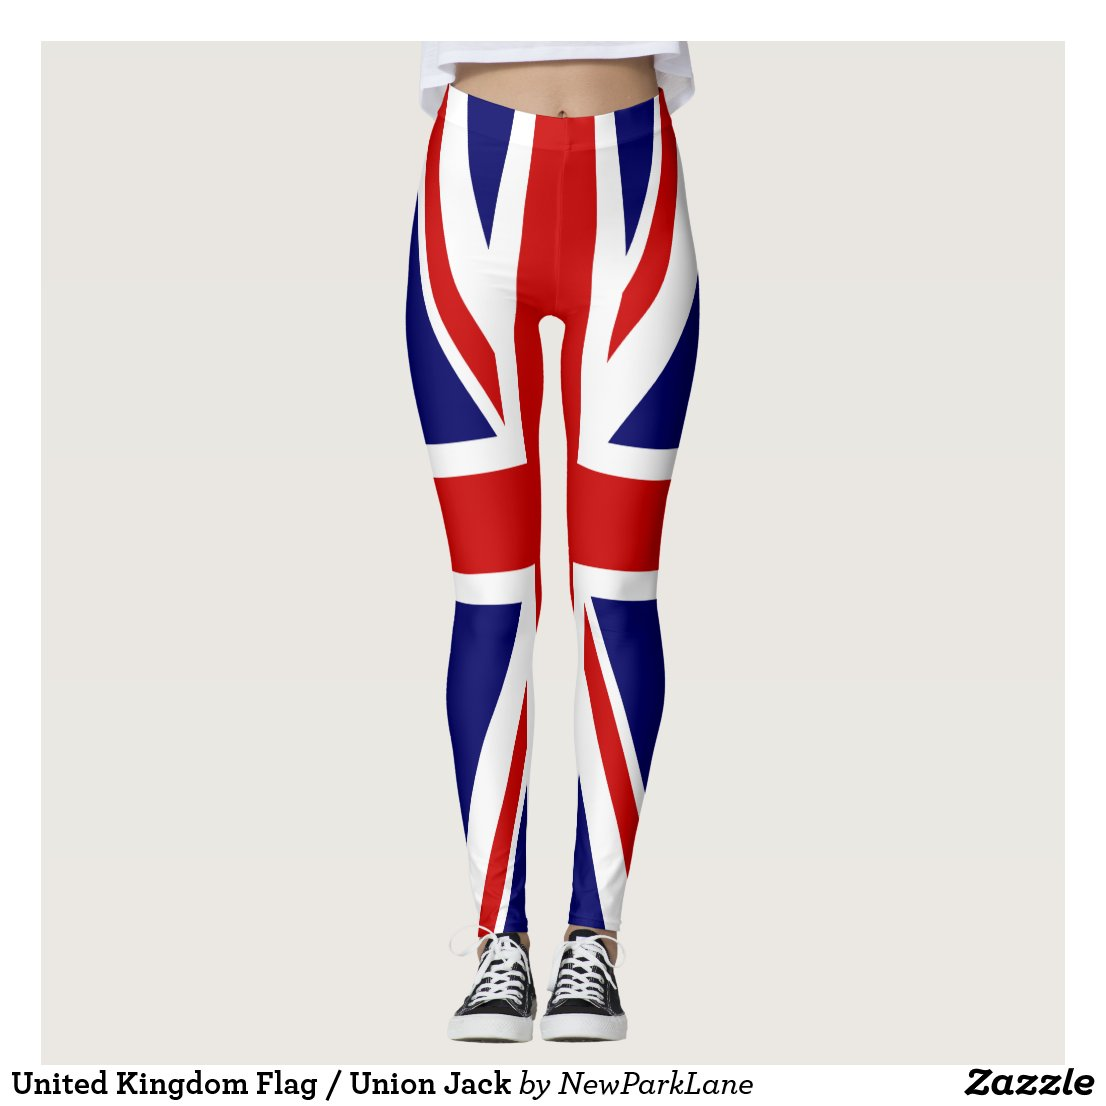 United Kingdom Flag / Union Jack Leggings